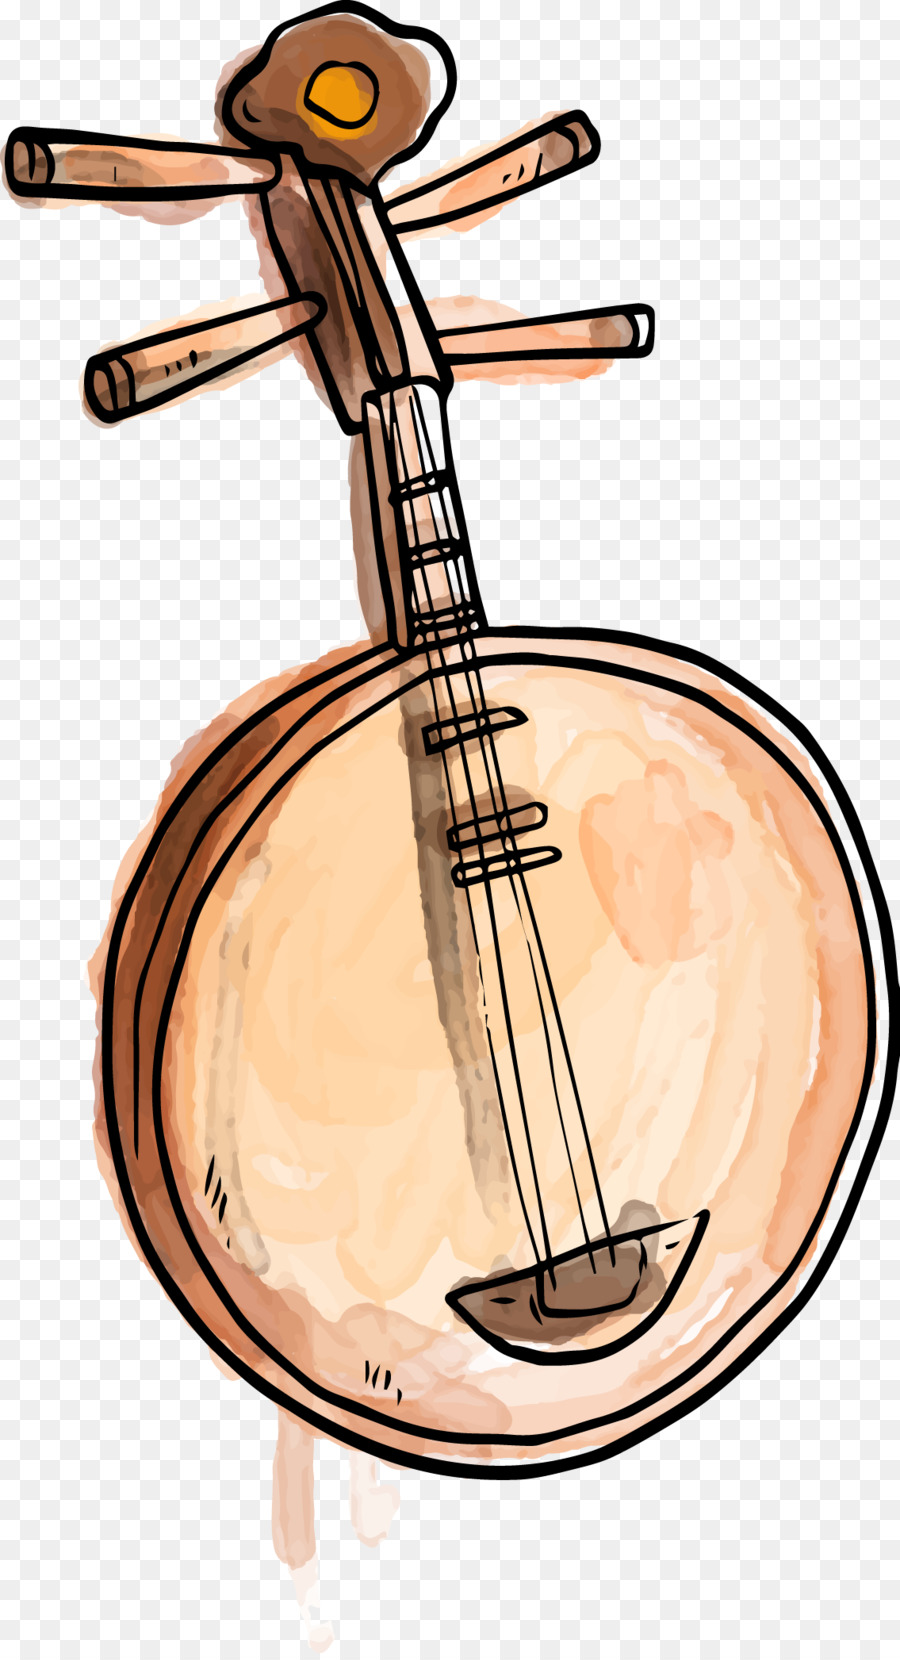 musical instrument download clip art vector drawing musical rh kisspng com  musical instruments clipart free download